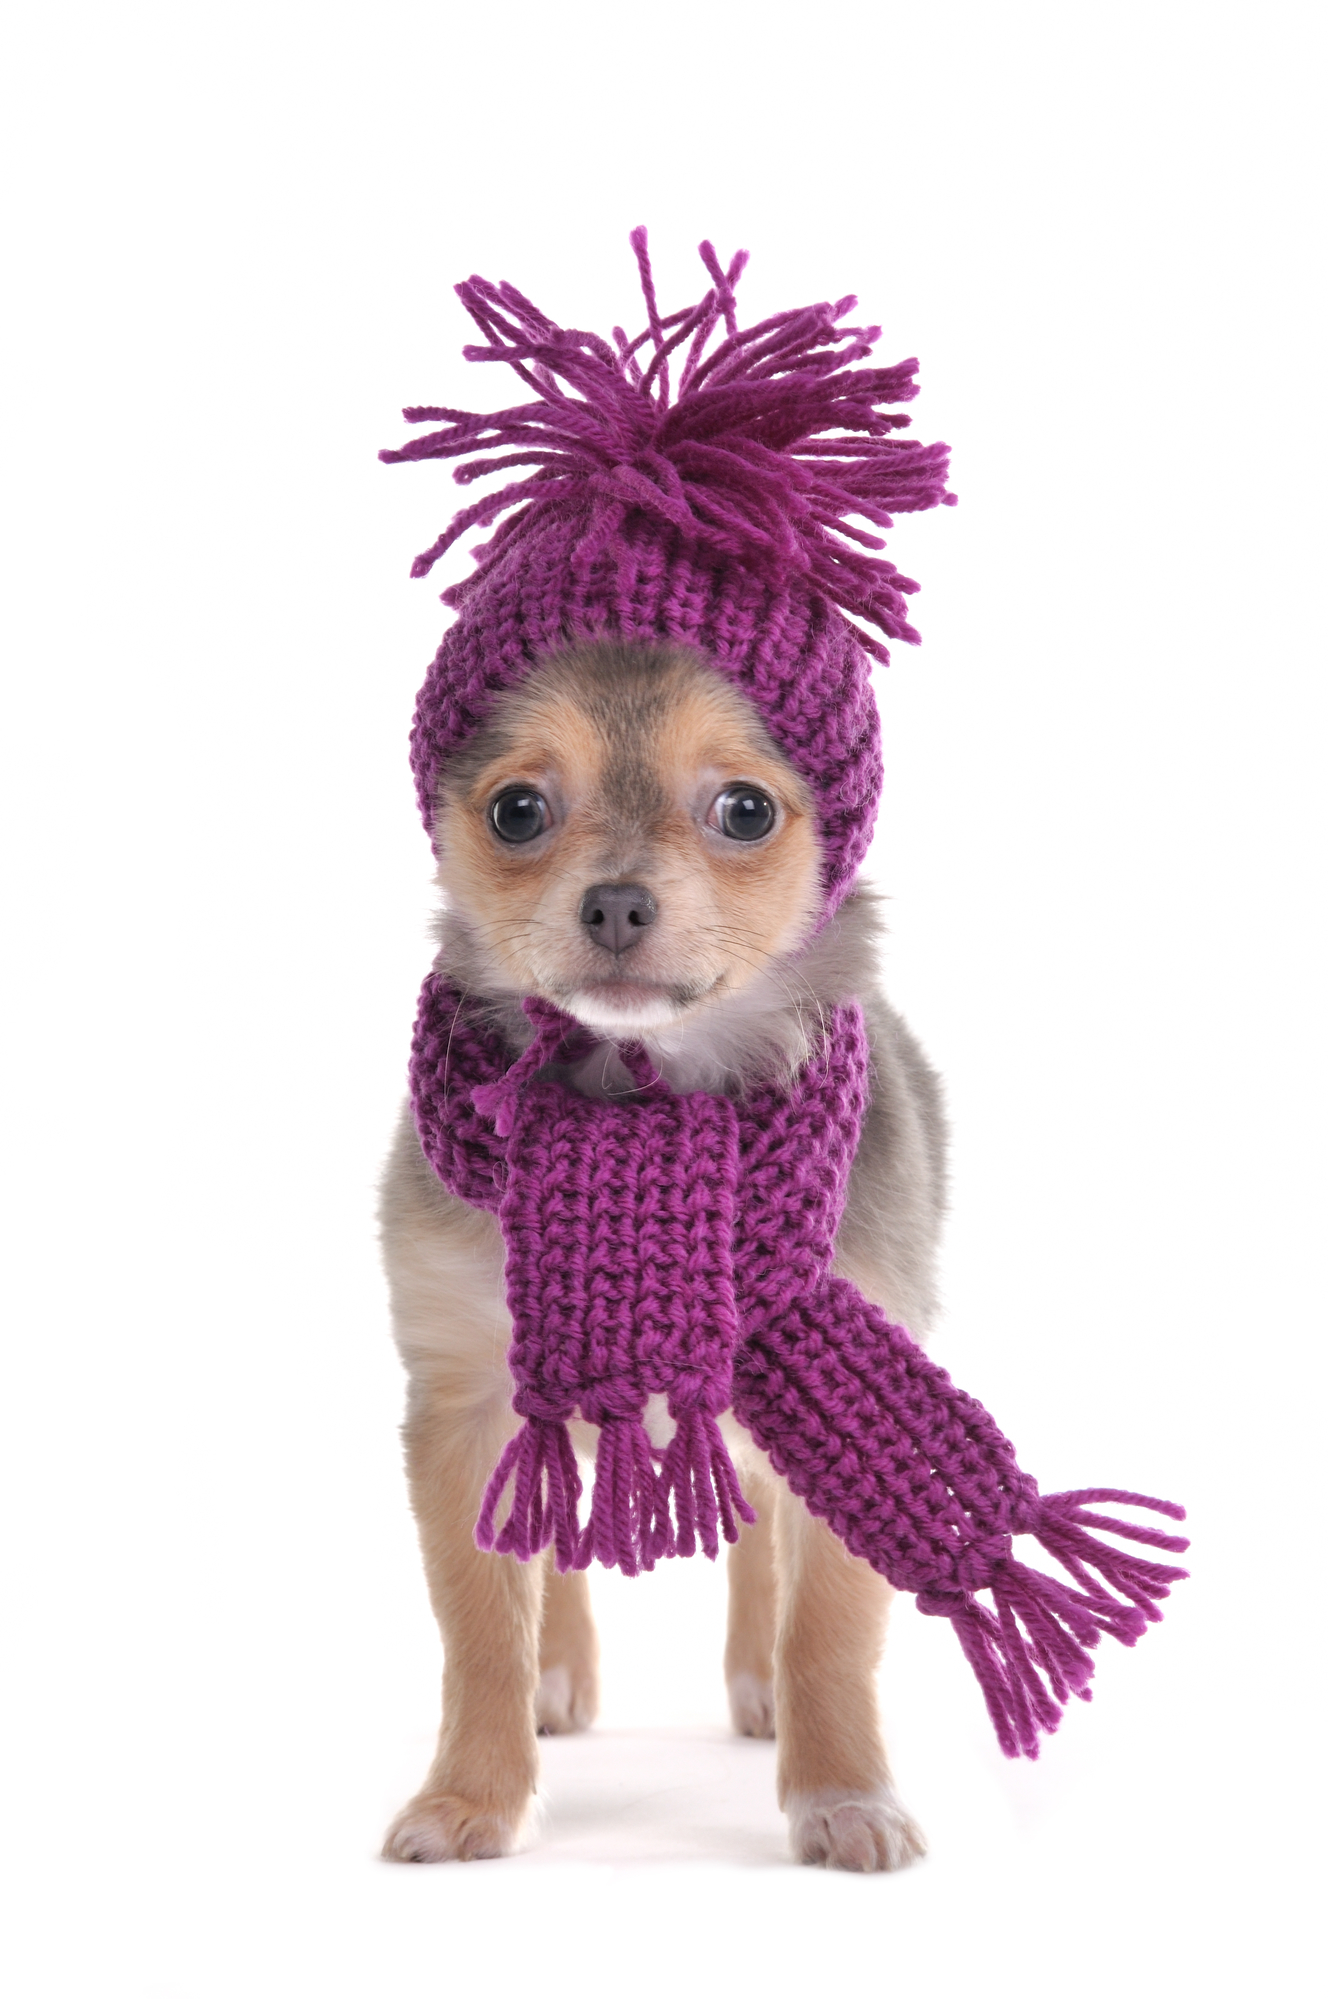 Dog-Bundled-Up